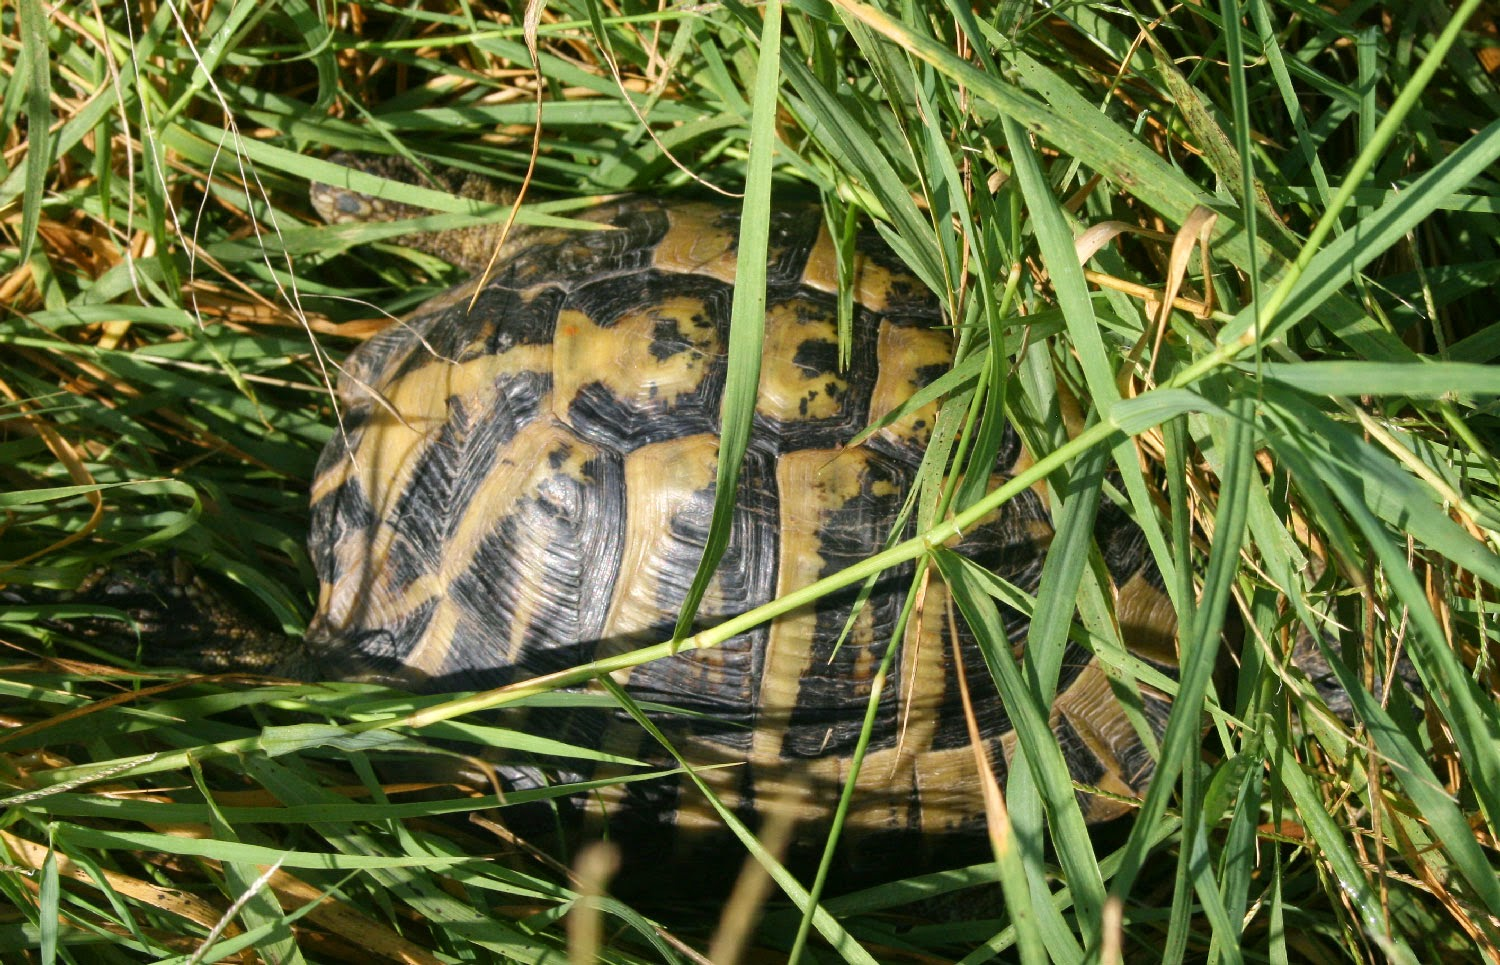 One of the tortoises, mid escape